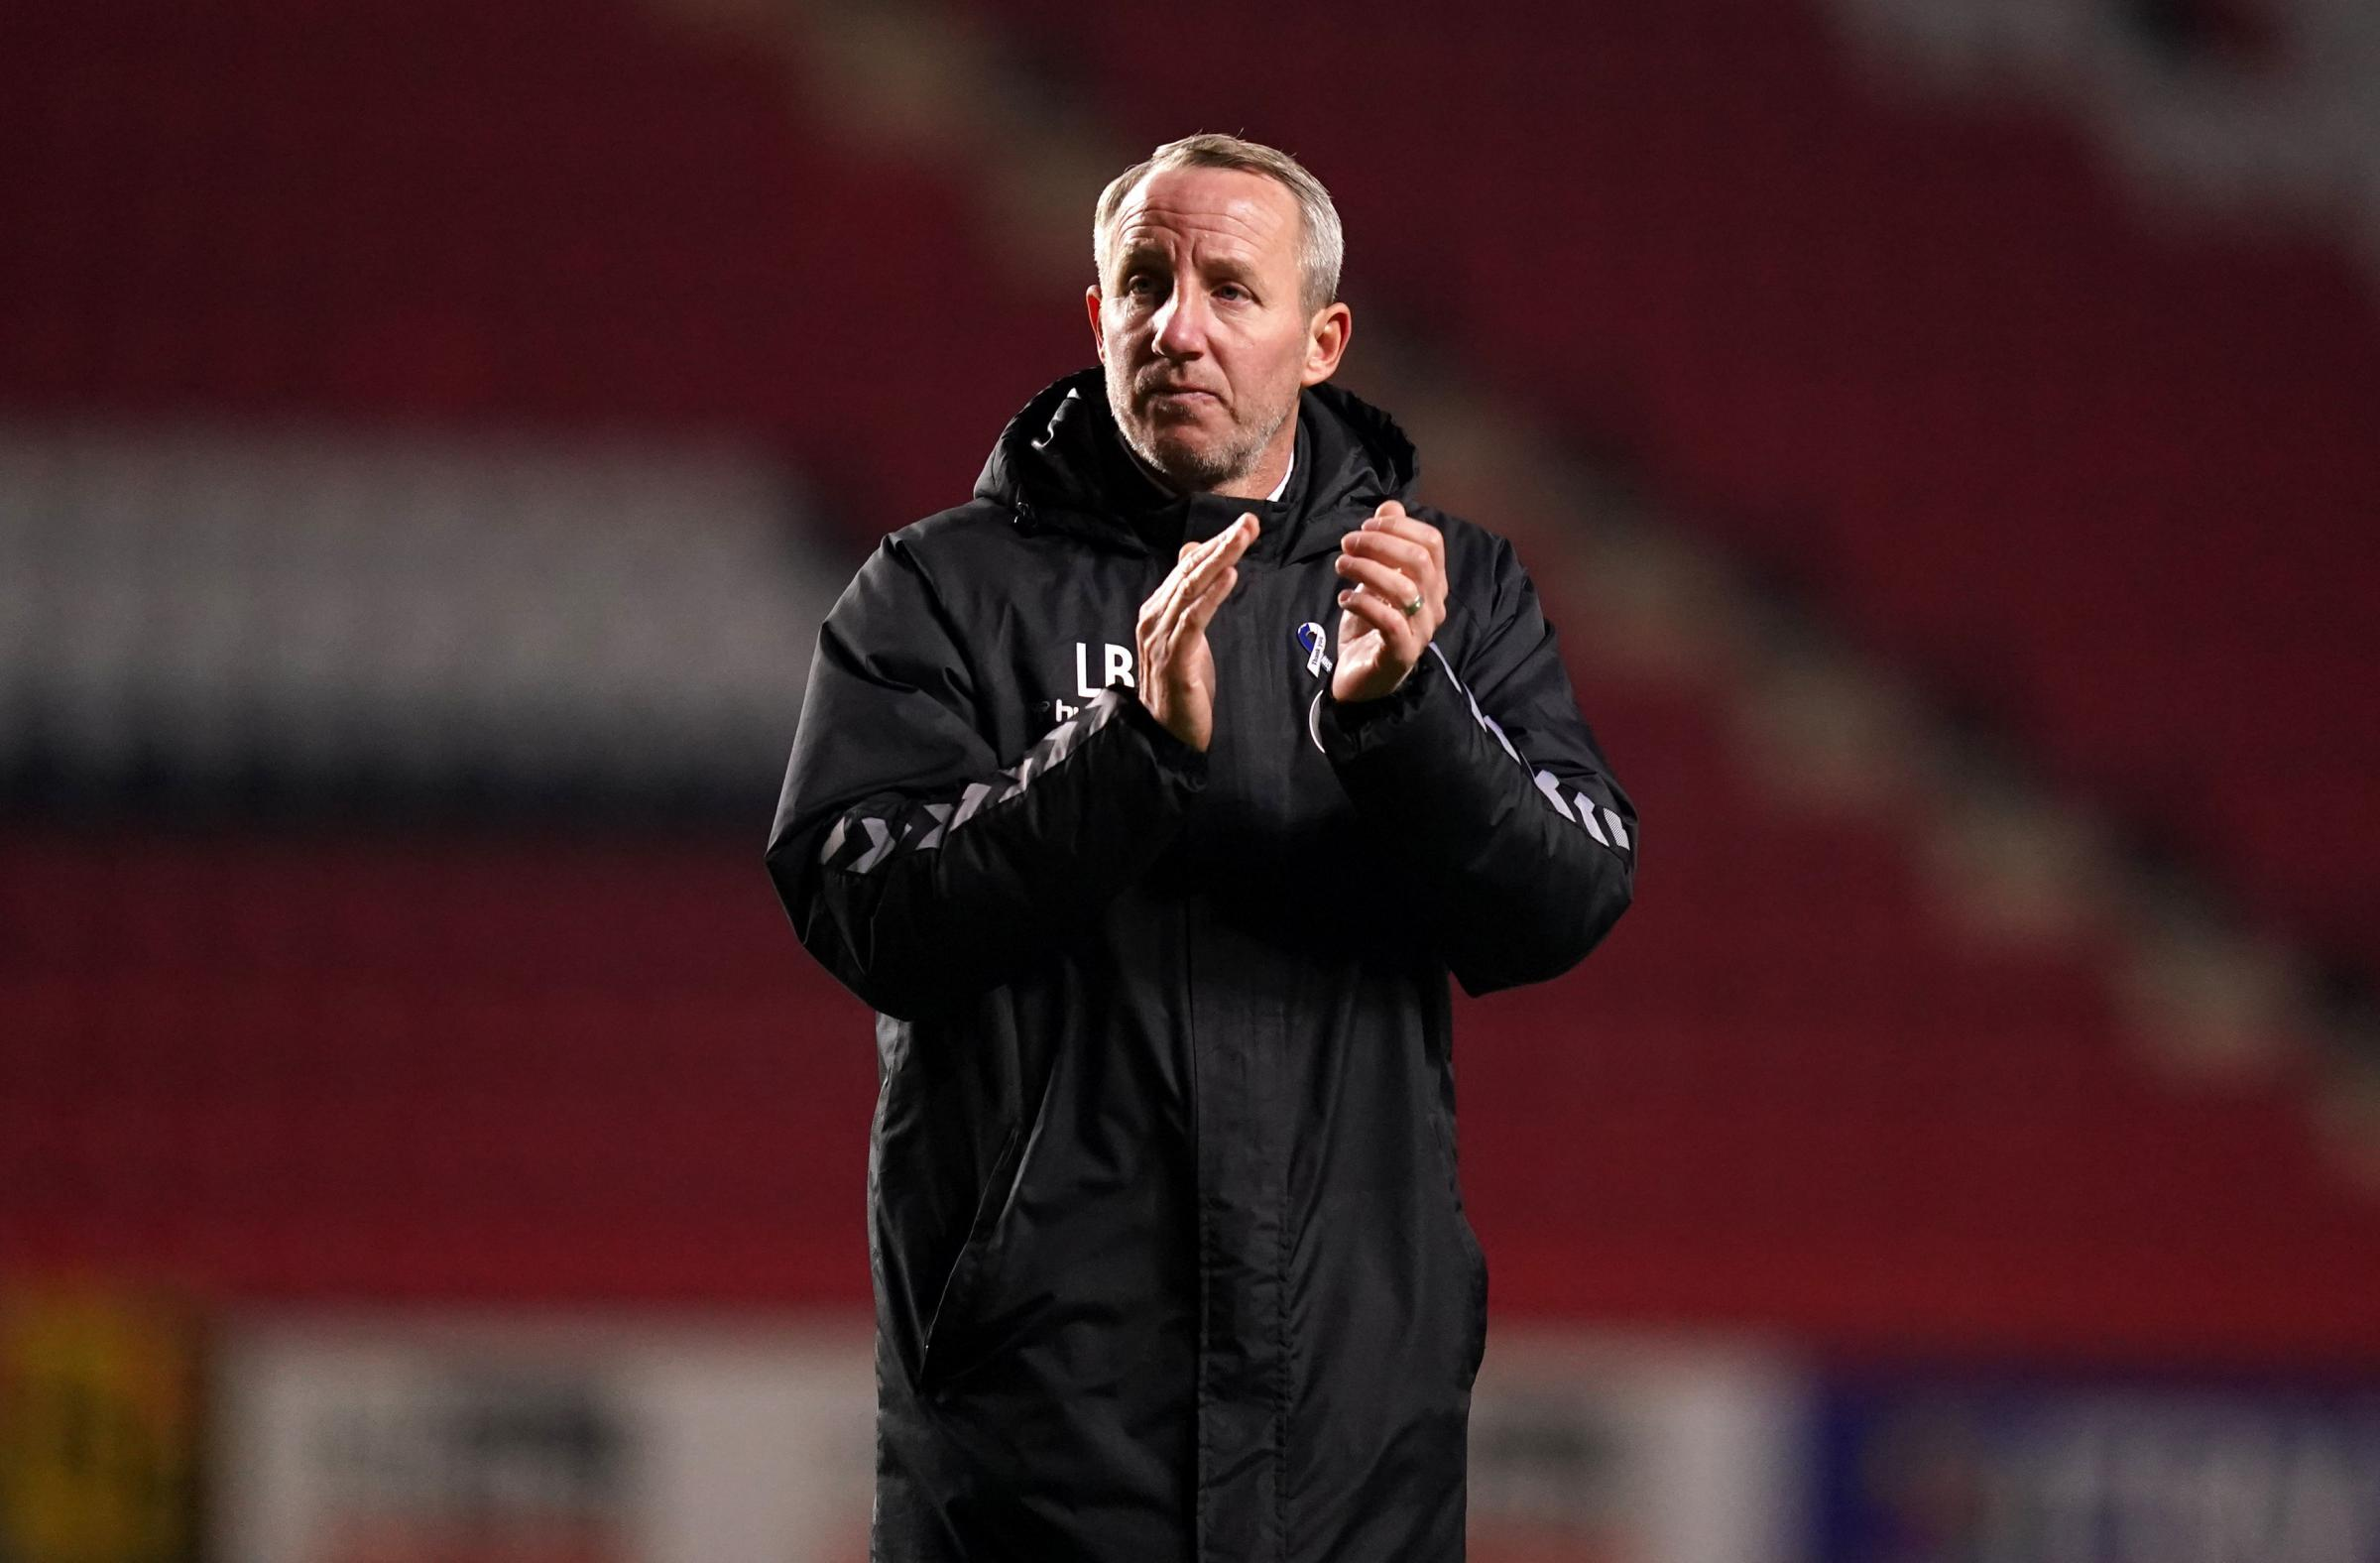 Charlton Athletic manager Lee Bowyer. John Walton/PA Wire.